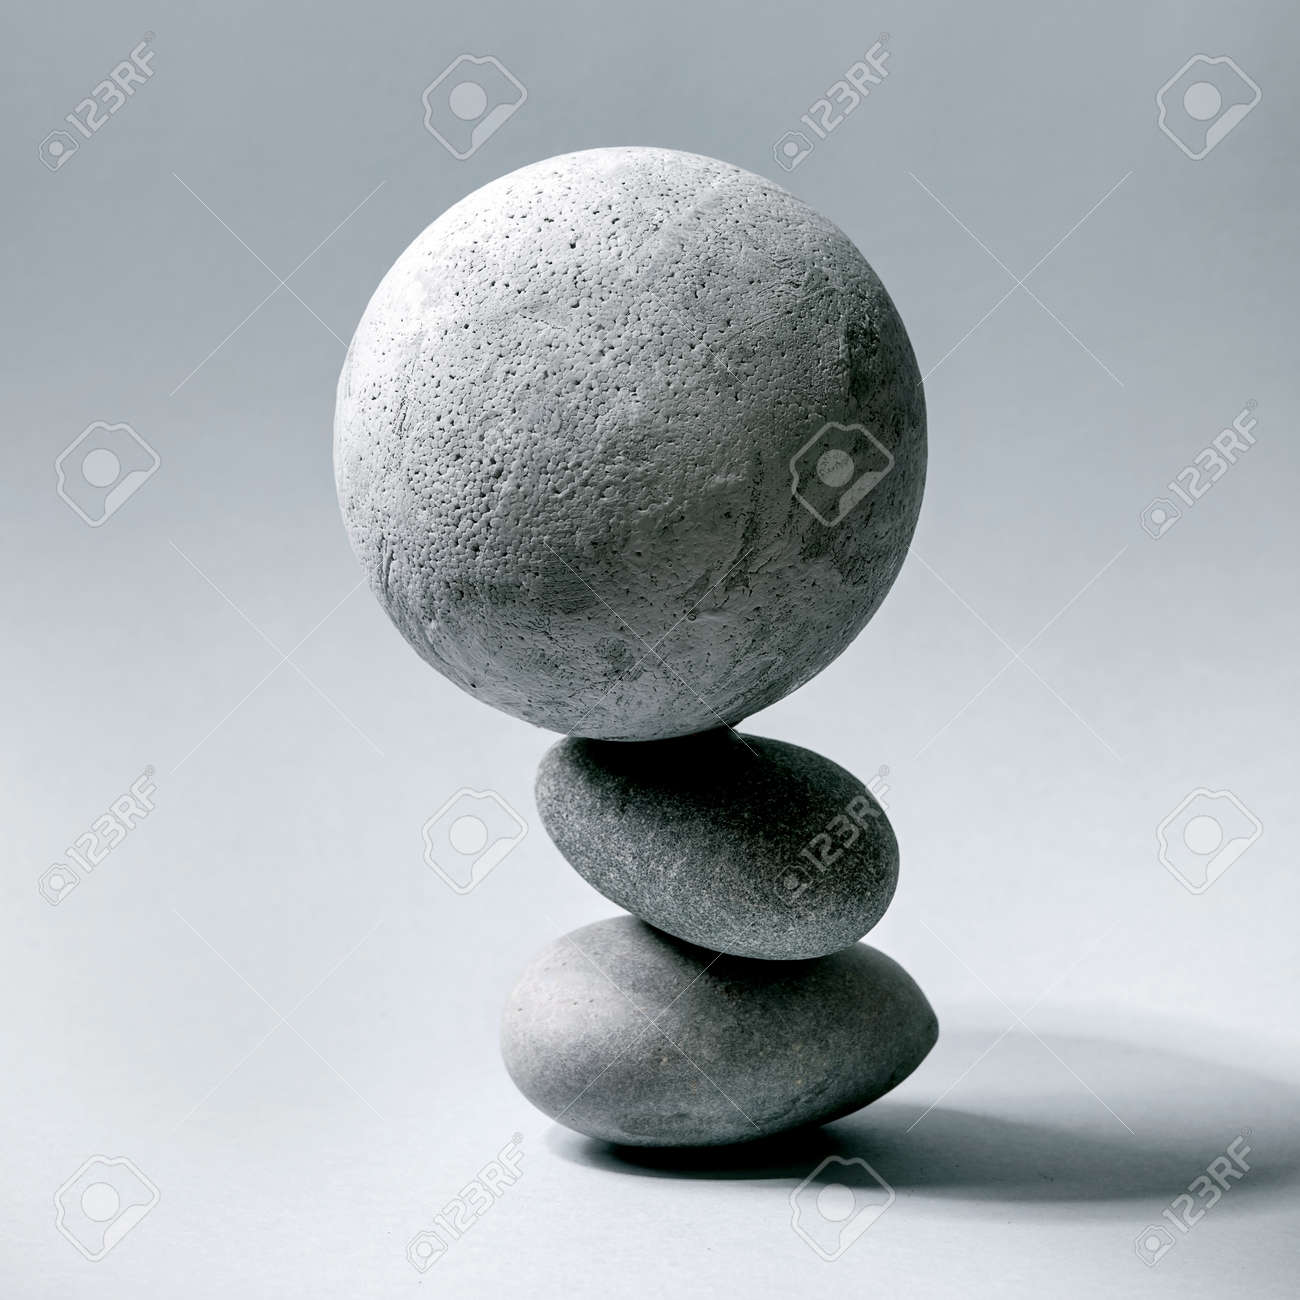 Abstract background with composition of balanced grey geometric objects sphere and stones. Copy space. Modern concept for product presentation. Square - 171903237